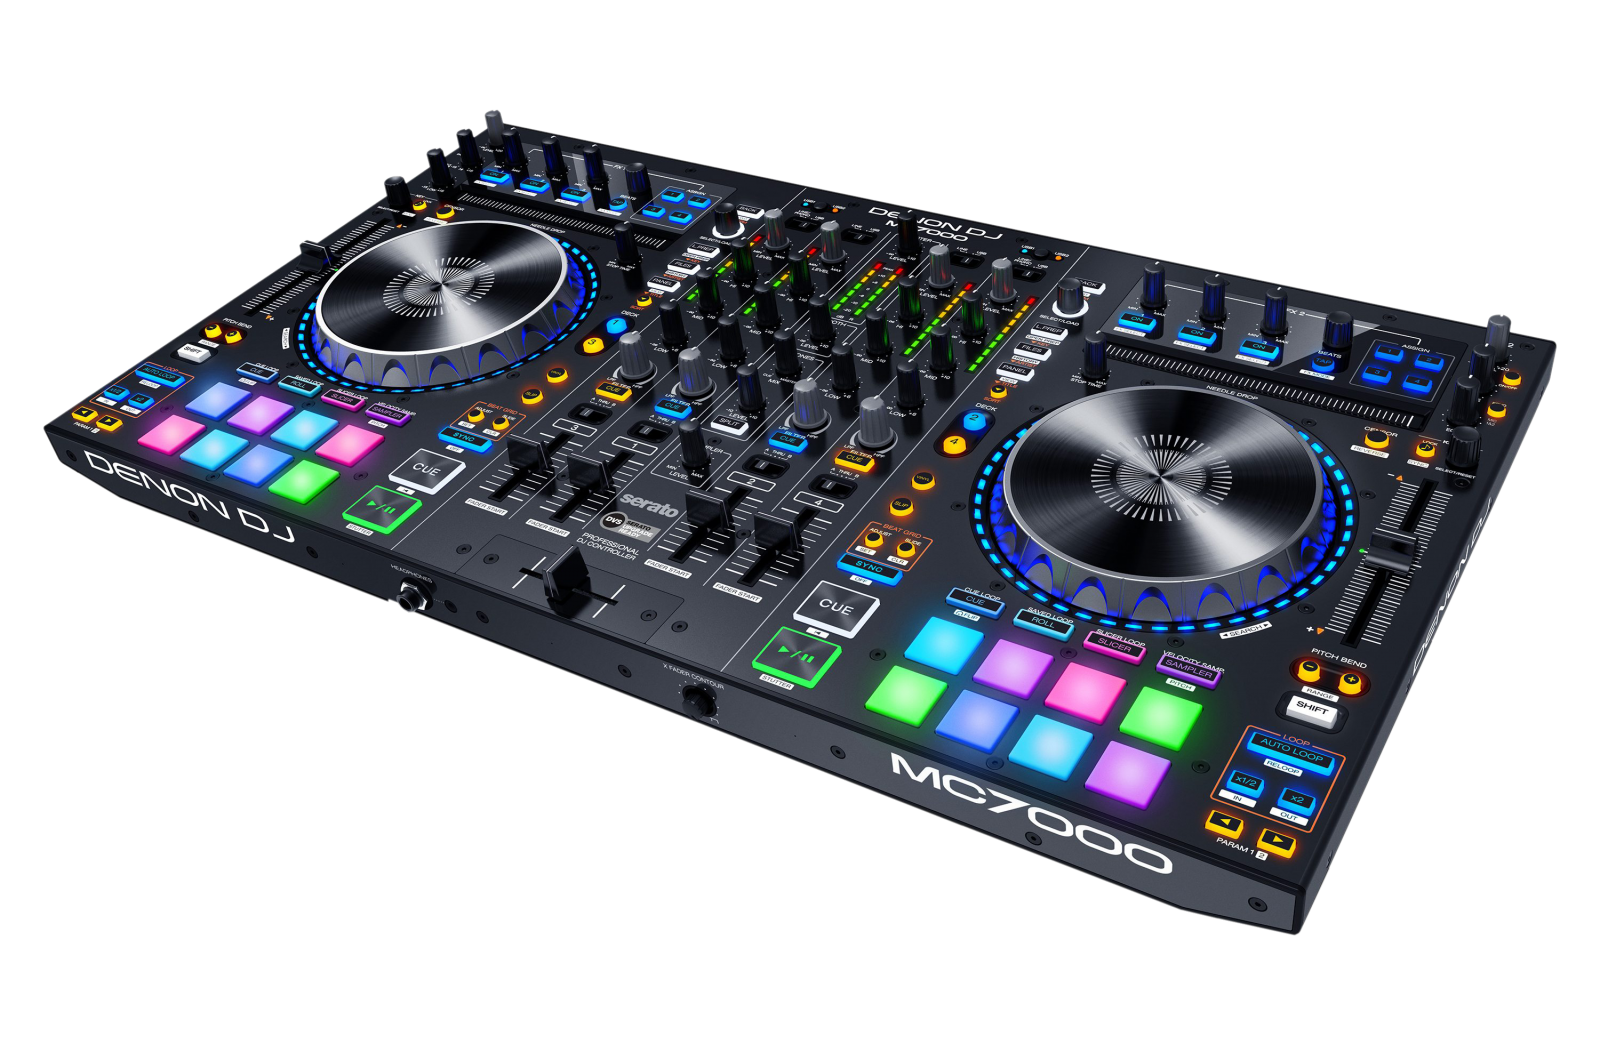 Denon DJ MC7000 - Complete Setup and Routing in Virtual DJ